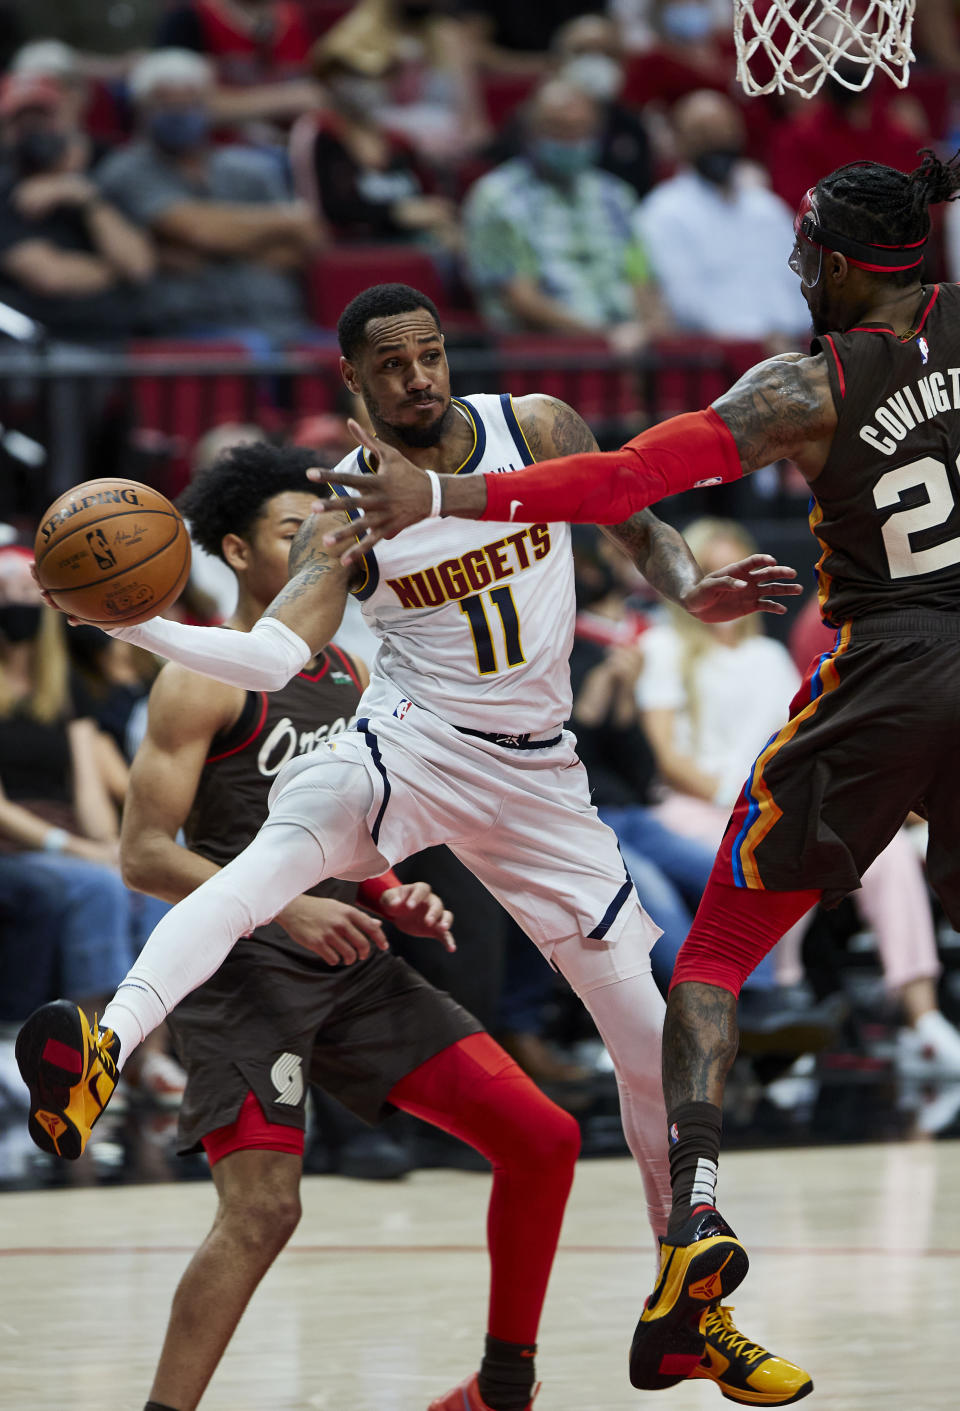 Denver Nuggets guard Monte Morris (11) passes the ball around Portland Trail Blazers forward Robert Covington, right, during the first half of Game 6 of an NBA basketball first-round playoff series Thursday, June 3, 2021, in Portland, Ore. (AP Photo/Craig Mitchelldyer)